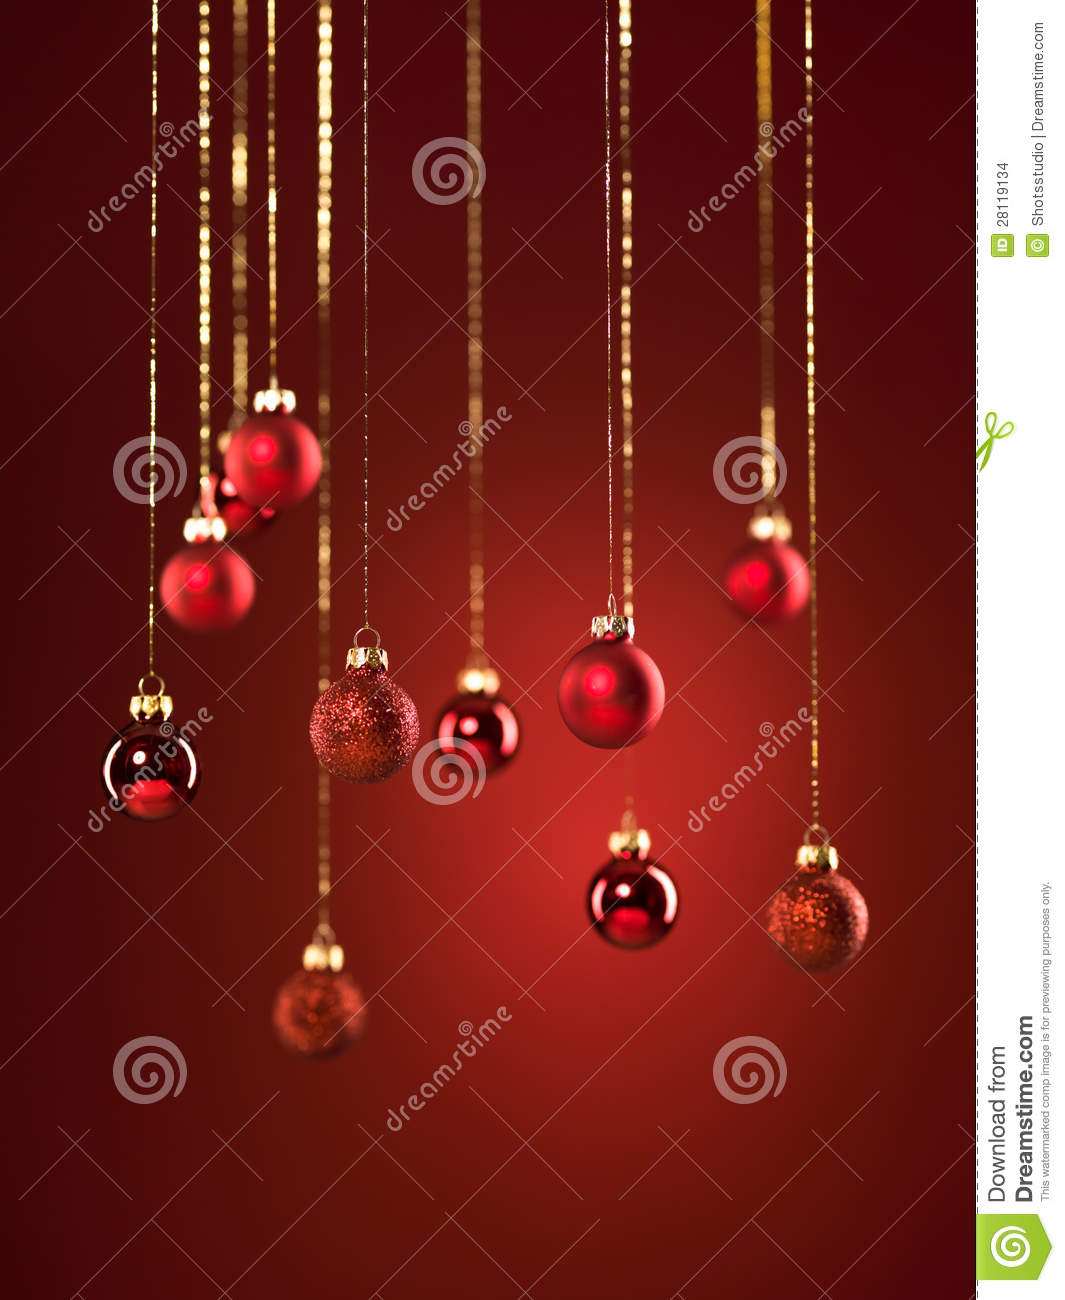 red christmas decorations - Red Christmas Decorations